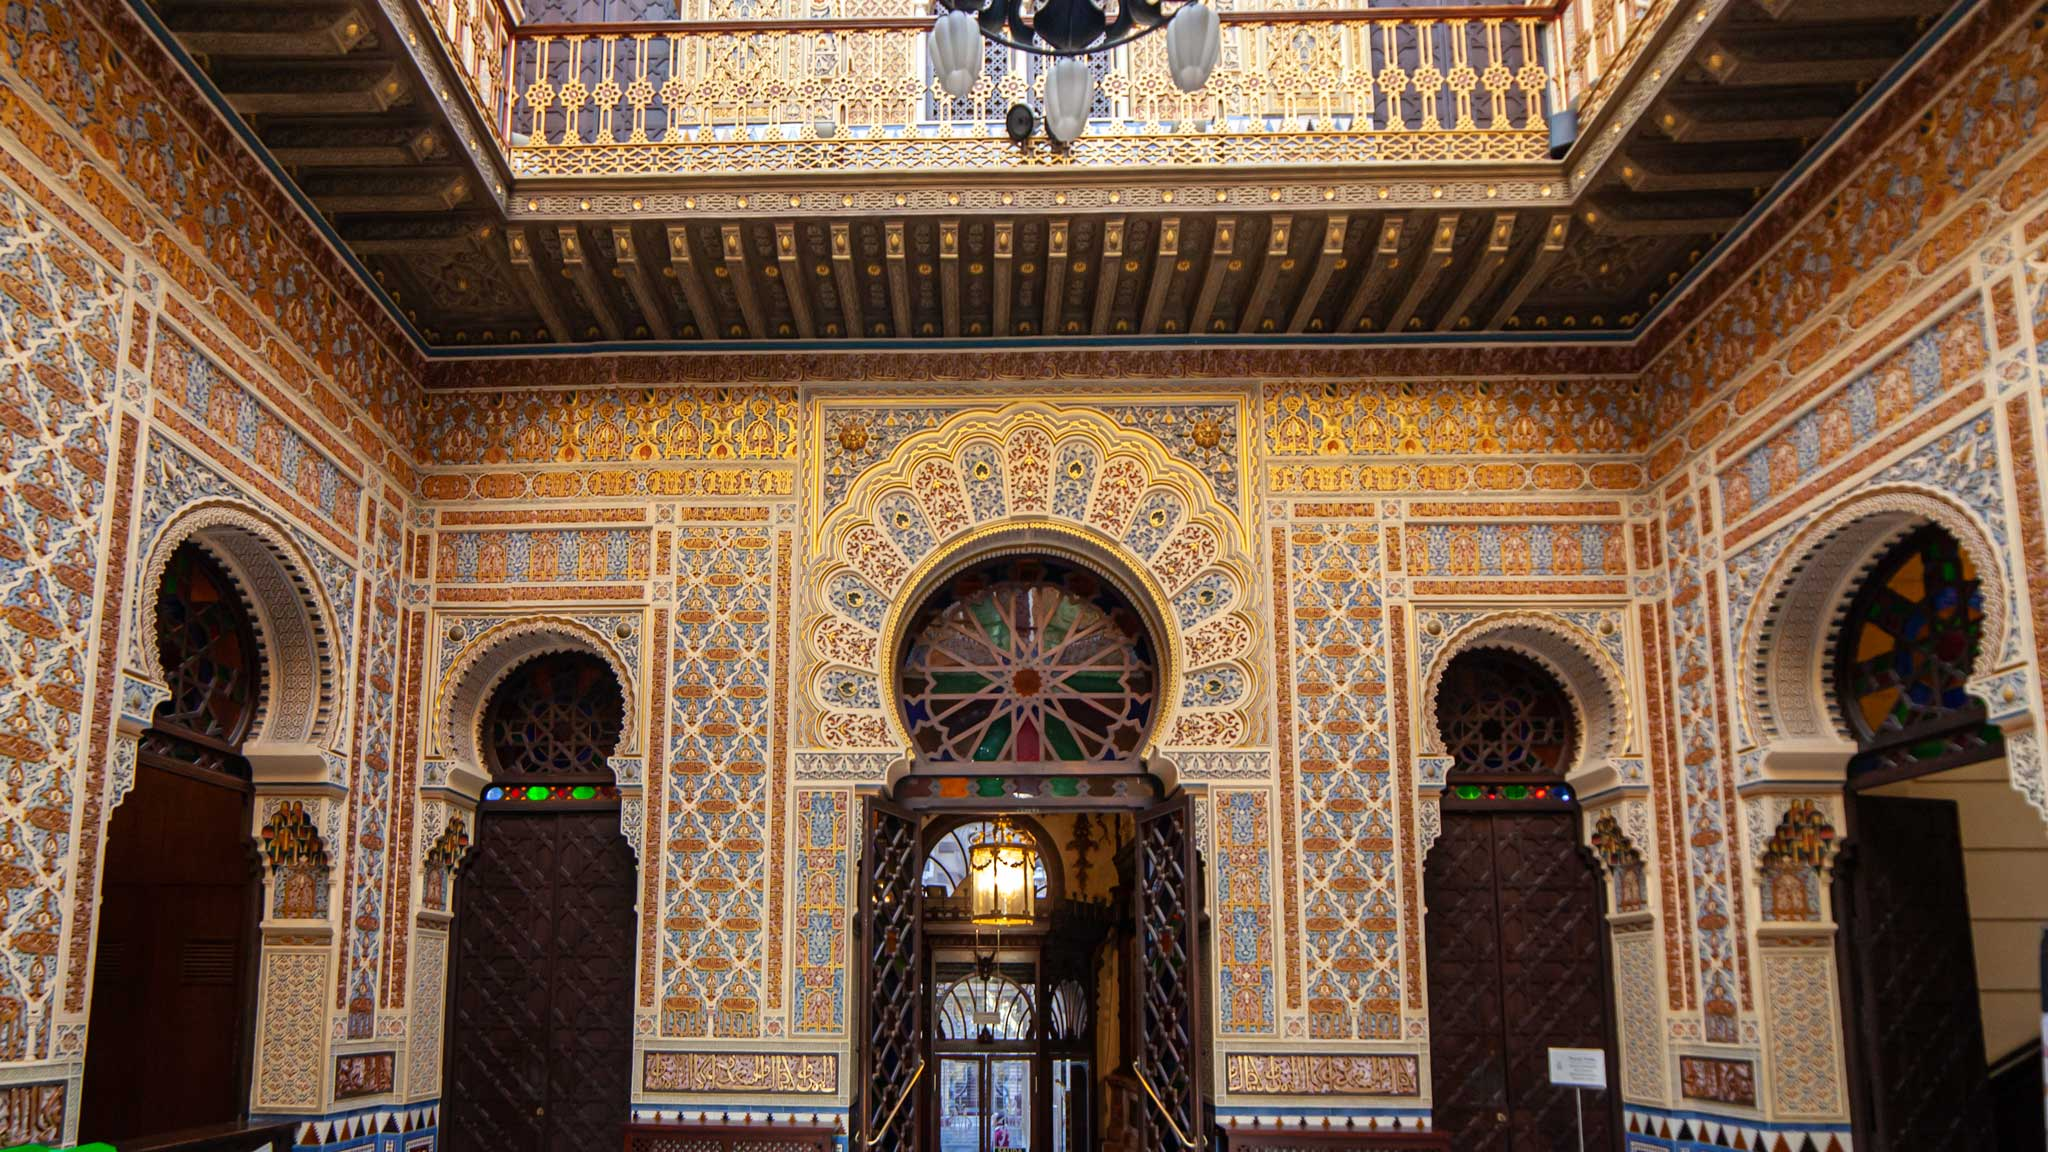 The amazing islamic tiling in the Real Casino of Murcia